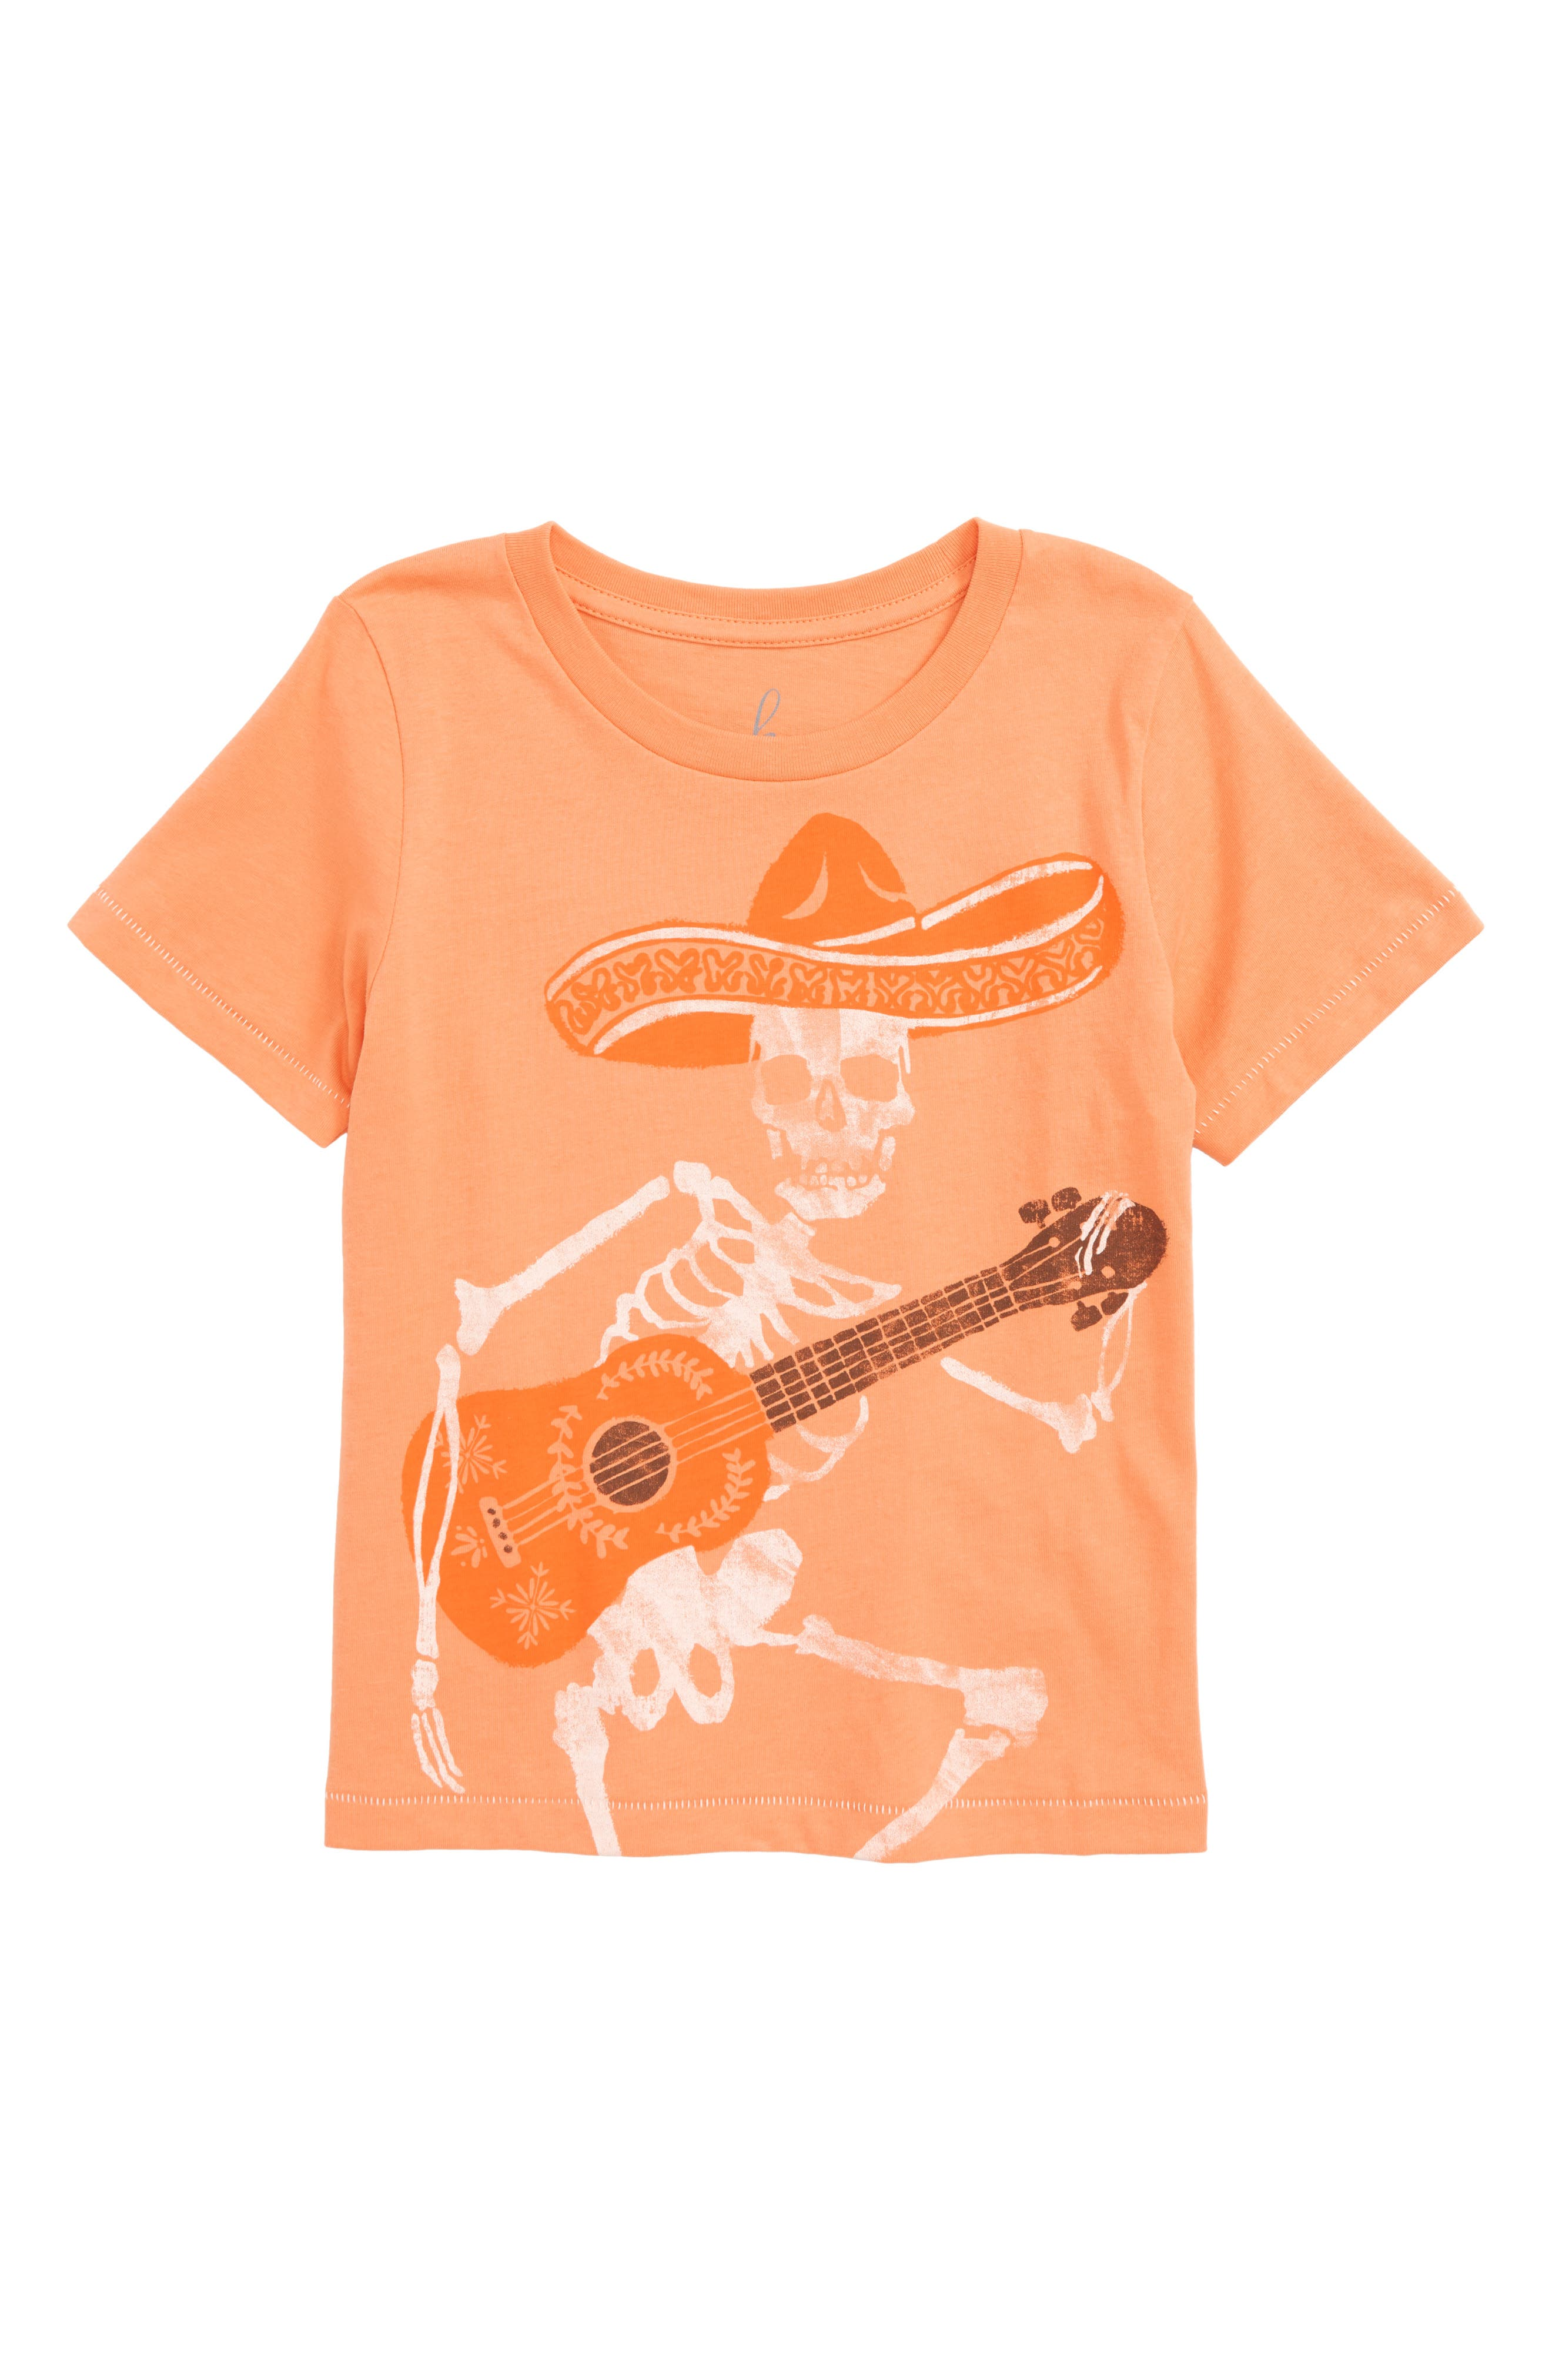 Fiesta and Siesta Graphic T-Shirt,                         Main,                         color, Orange